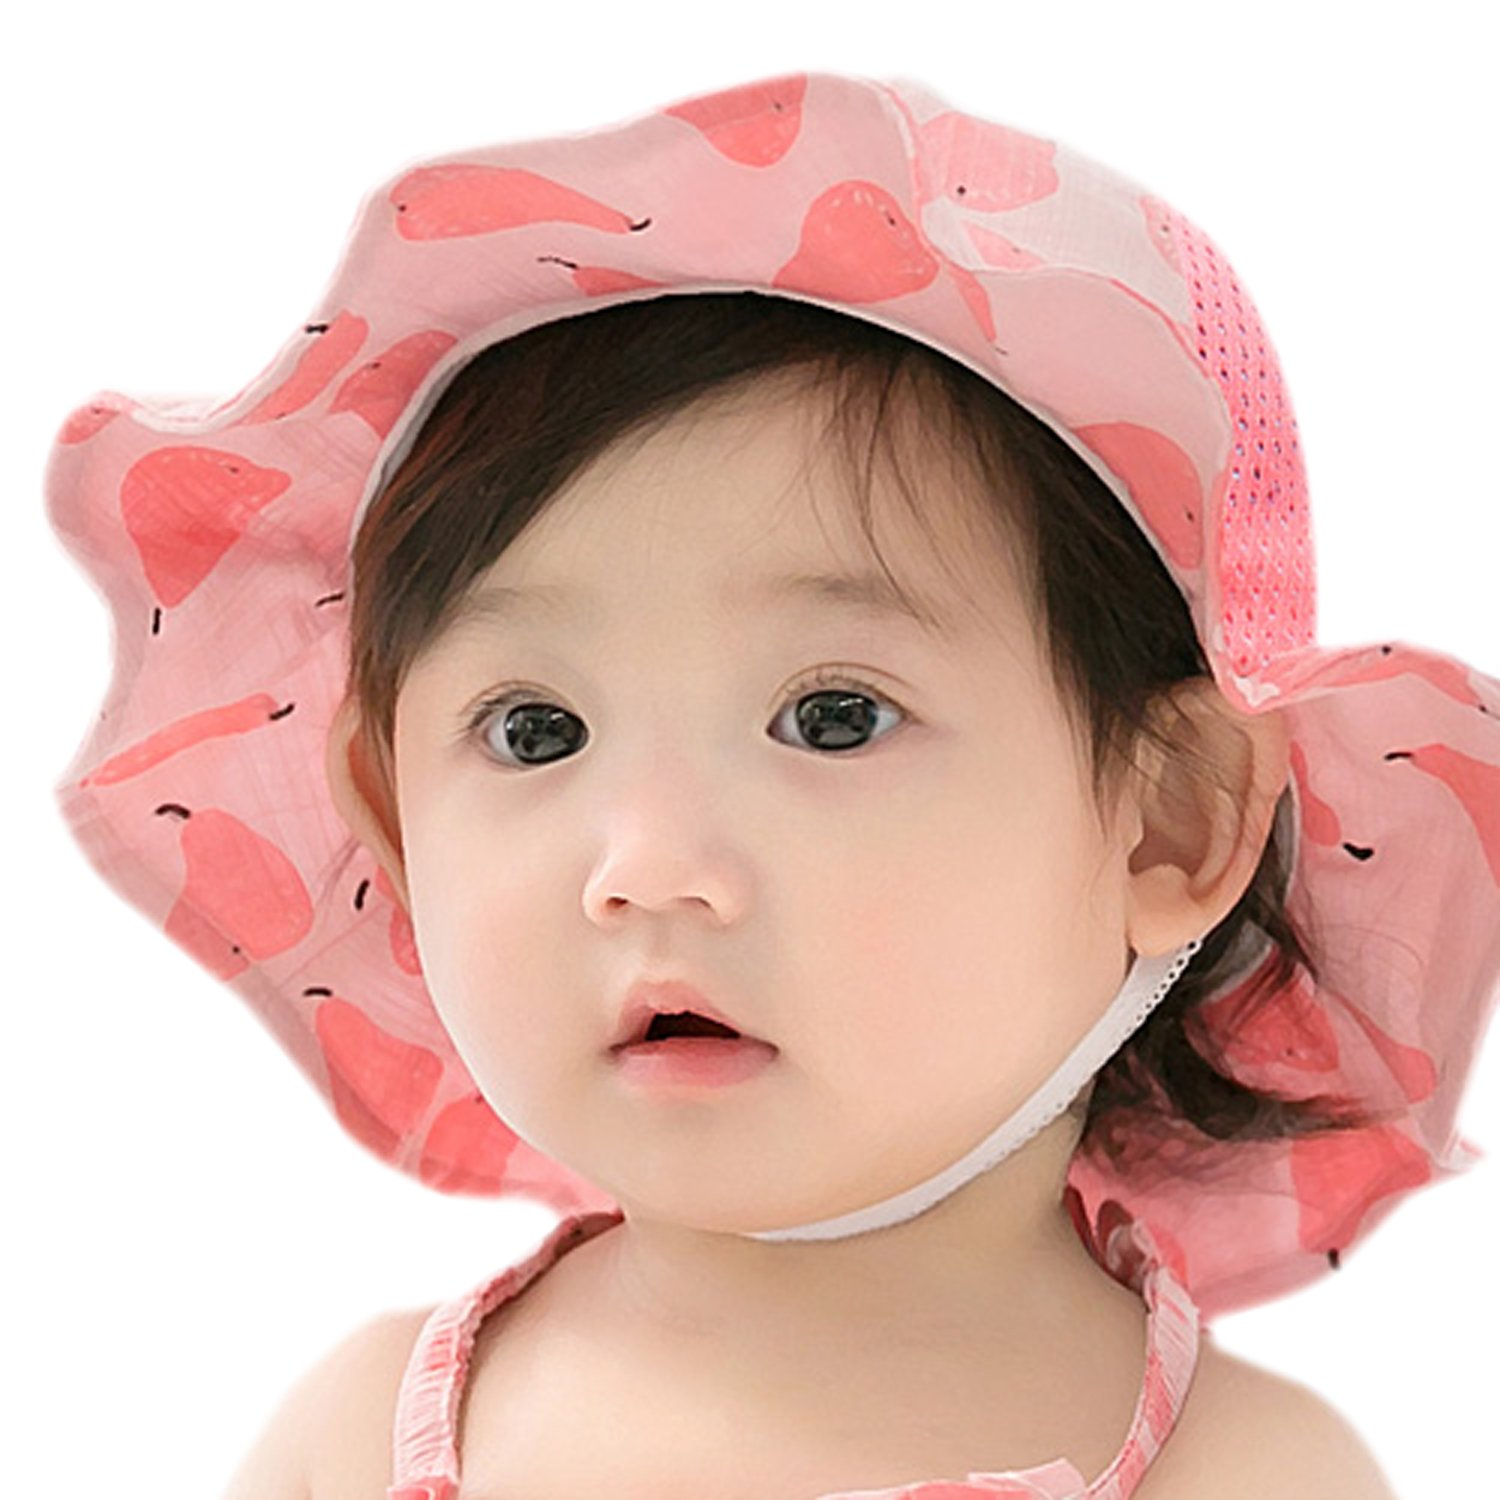 GZMM Baby Girls Sun Protection Hat Cotton Breathable Material UPF50+(6-12M) by GZMM (Image #1)